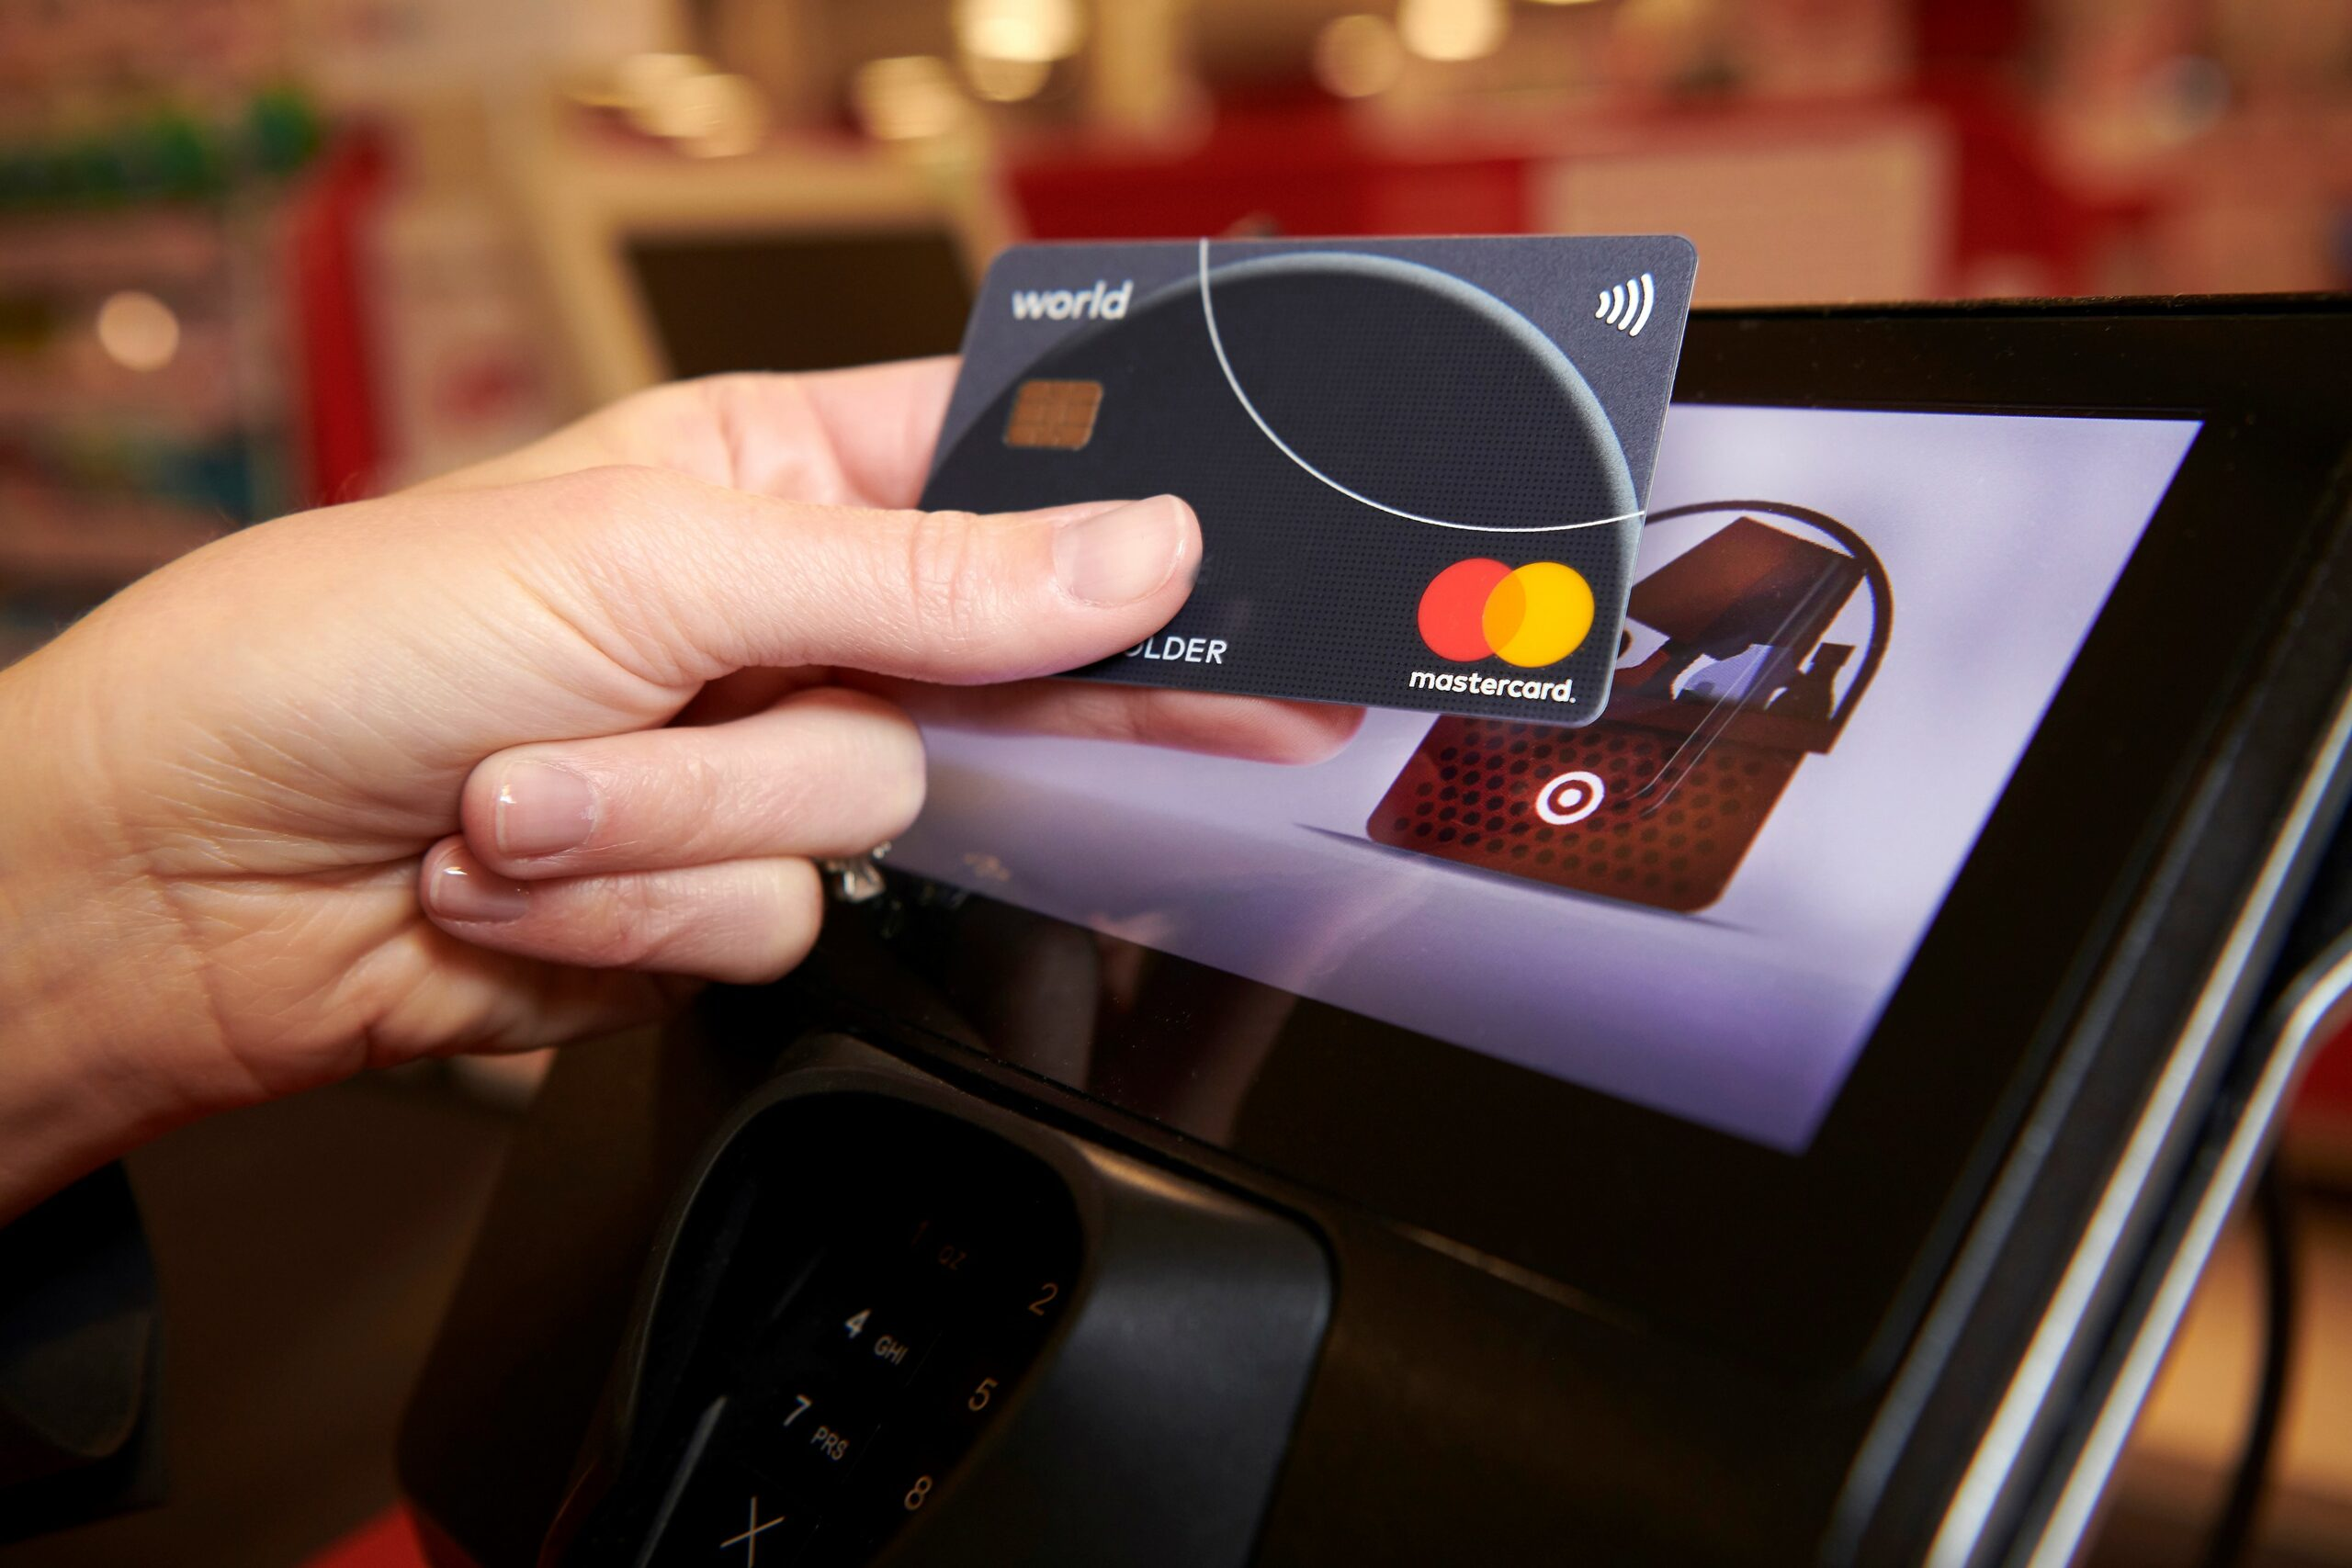 Contactless Payments Surge by 36% in Q3 2020 to $3.4 Billion